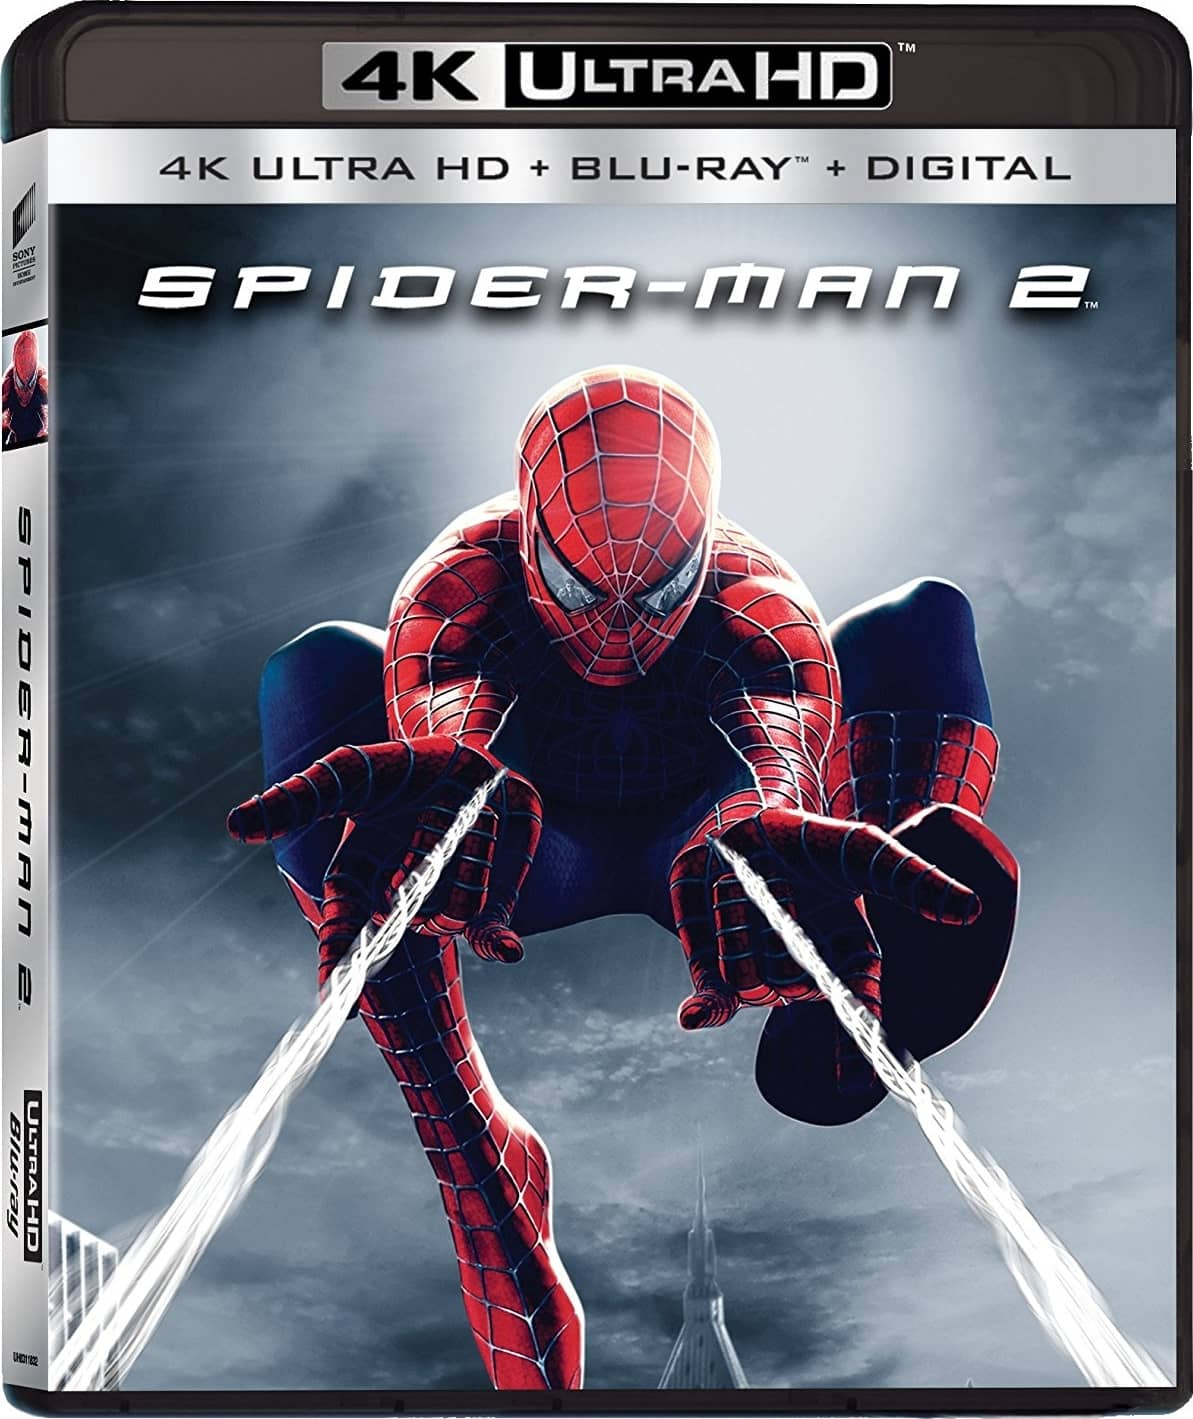 Spider-Man 2 4K 2004 Ultra HD 2160p